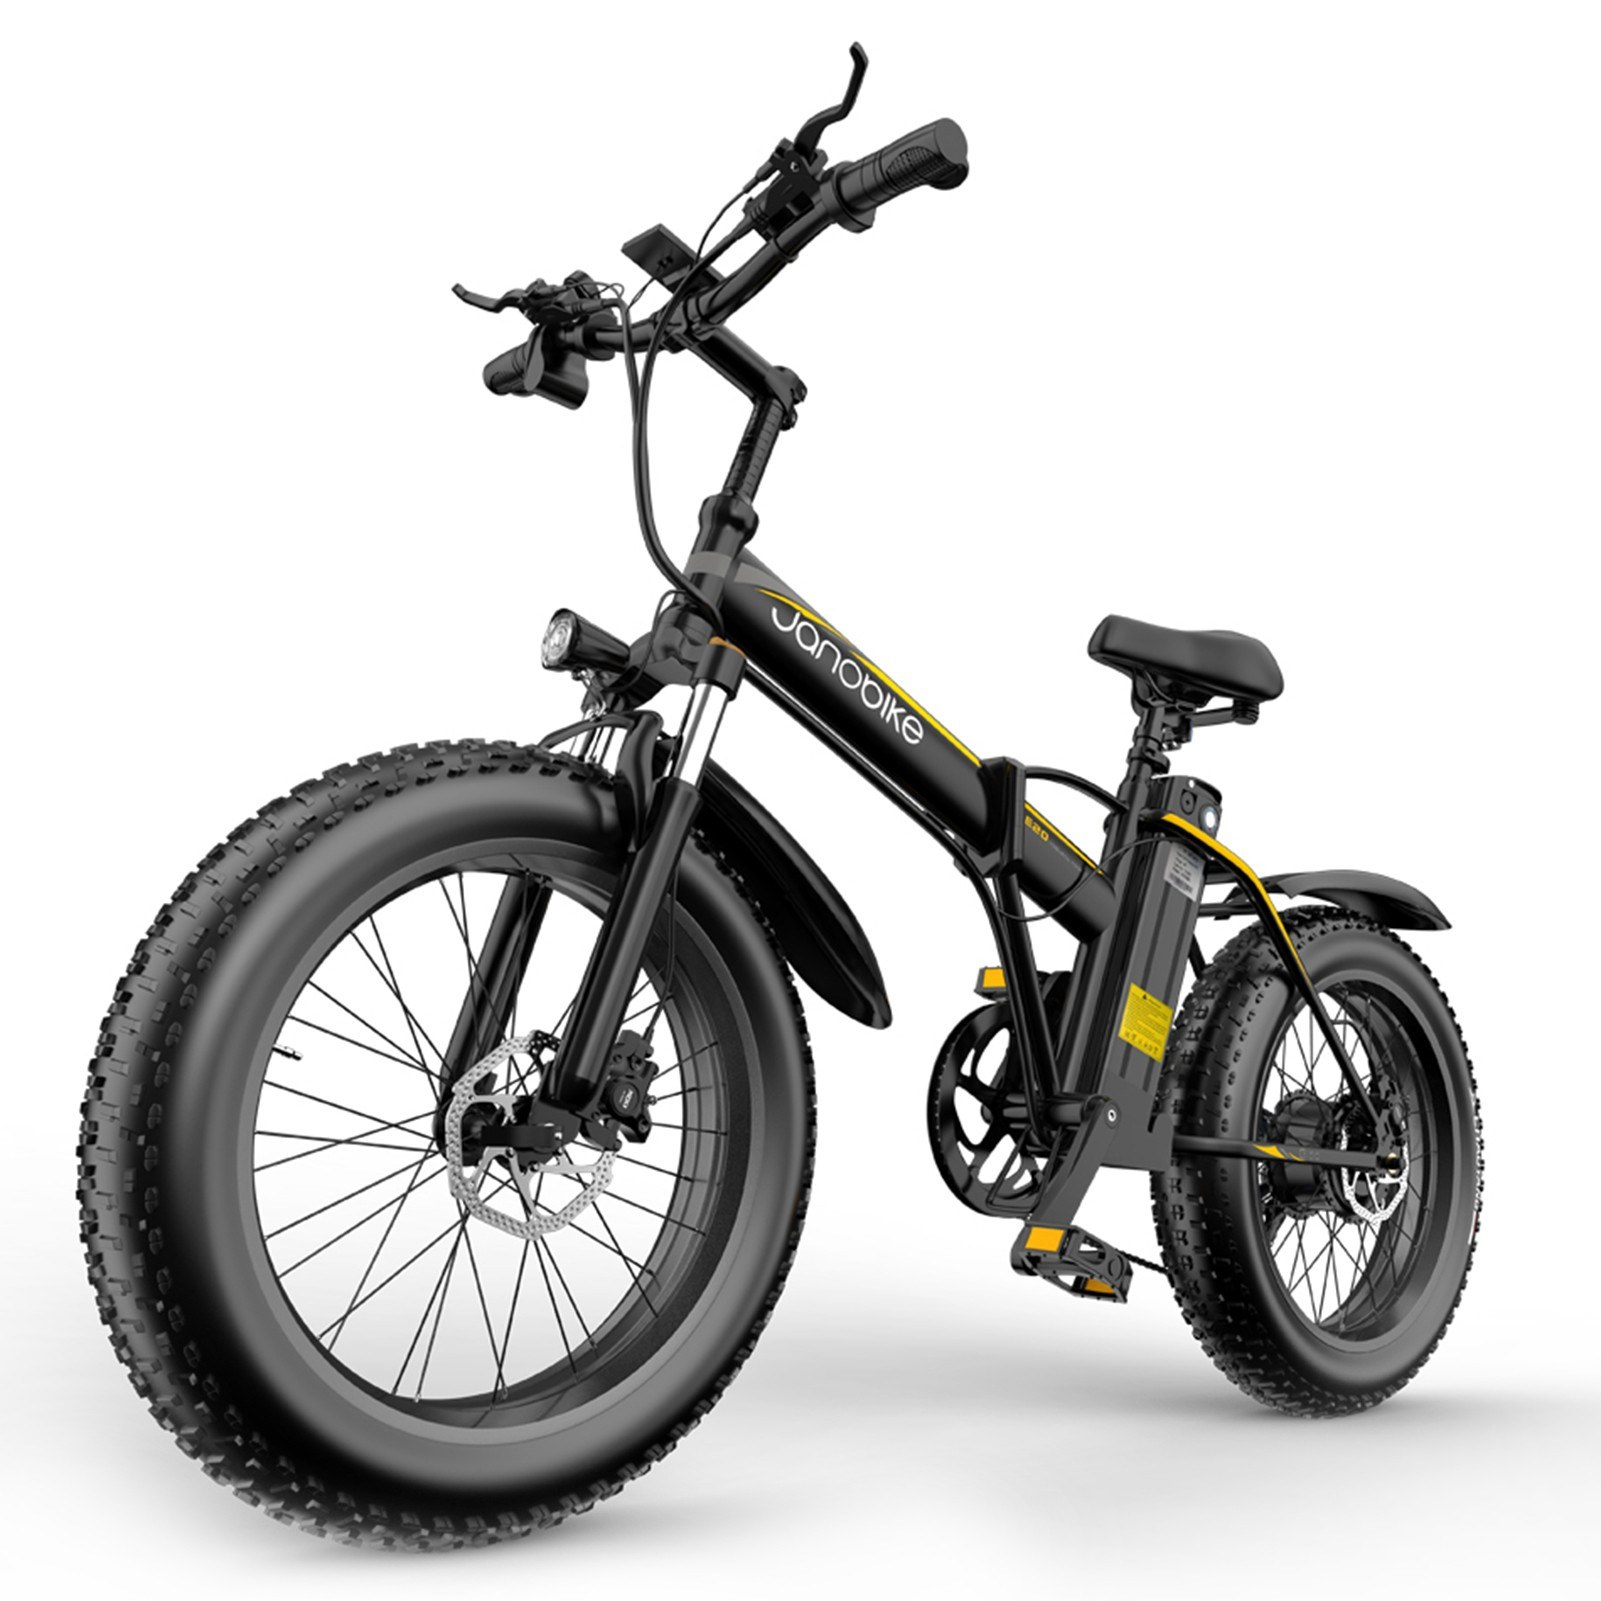 cafago.com - 30% OFF Janobike E20 1000W Electric Mountain Bicycle Bike 12.8AH Removable Battery with Suspension Fork,free shipping+$1301.25